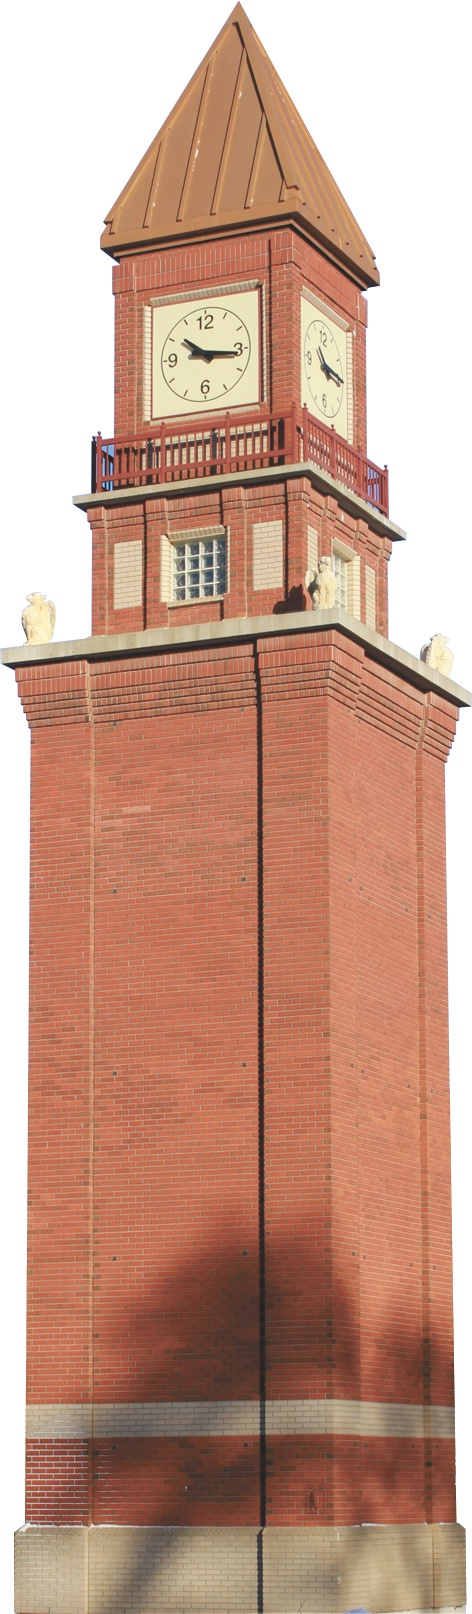 More on the St. Albert Clock Tower and the architectural research being studied.